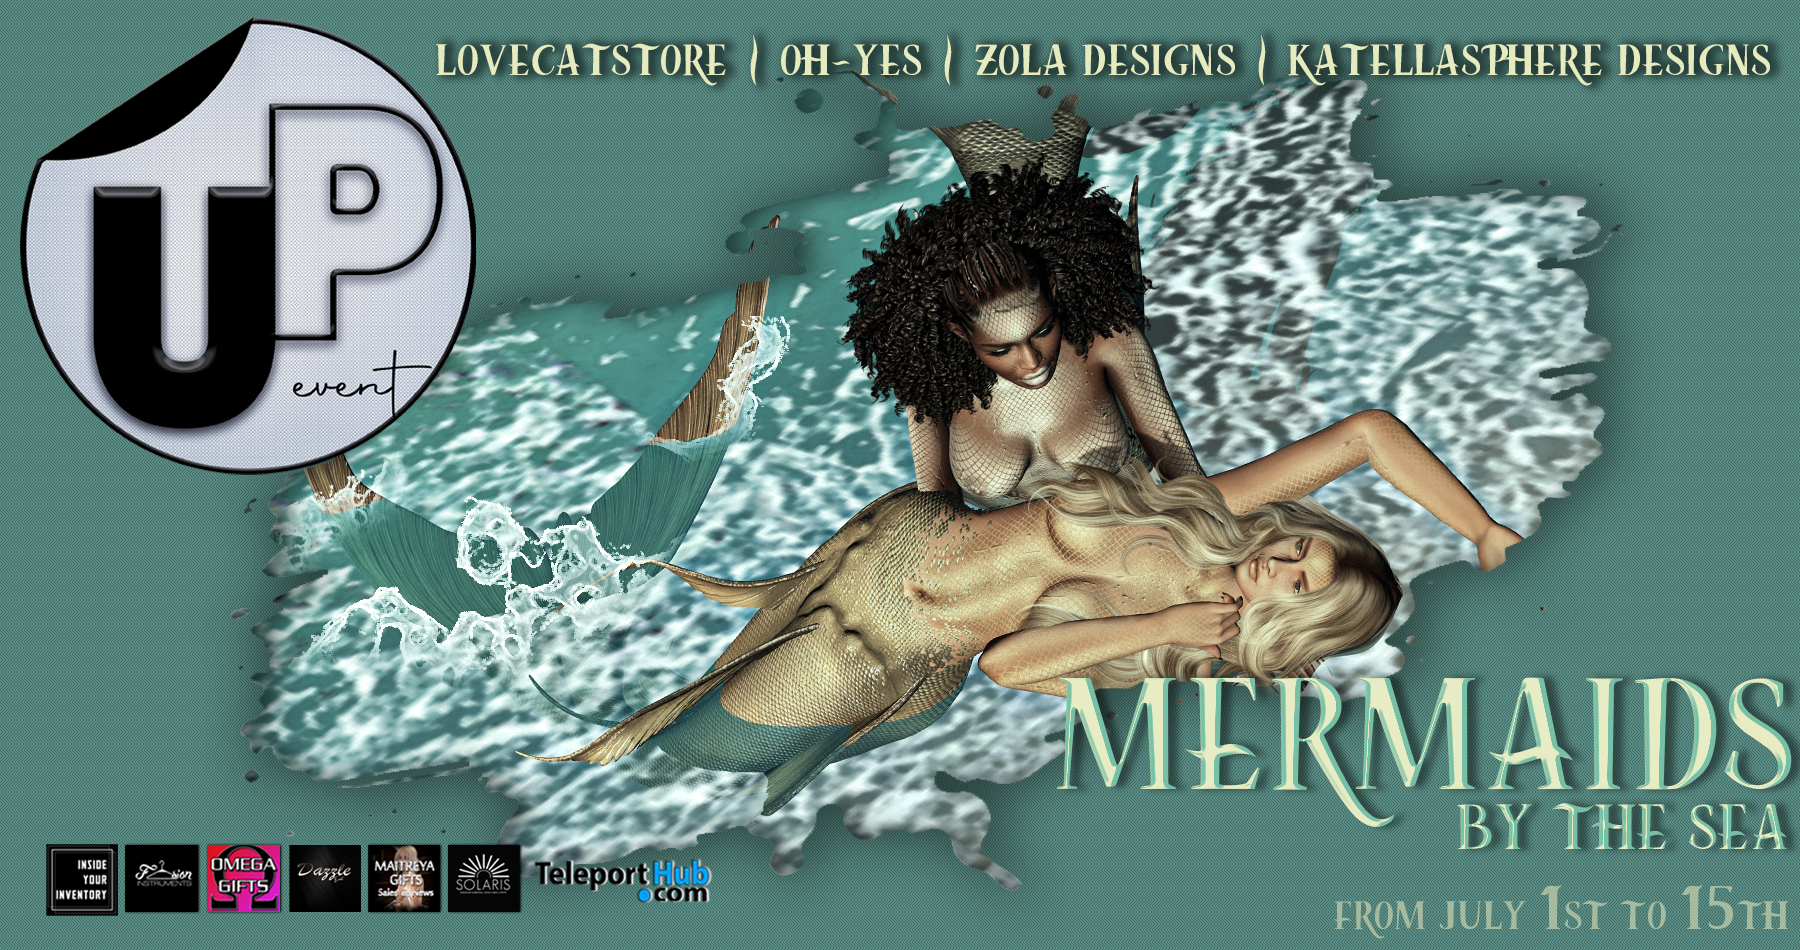 GALLERY UP! MERMAIDS BY THE SEA